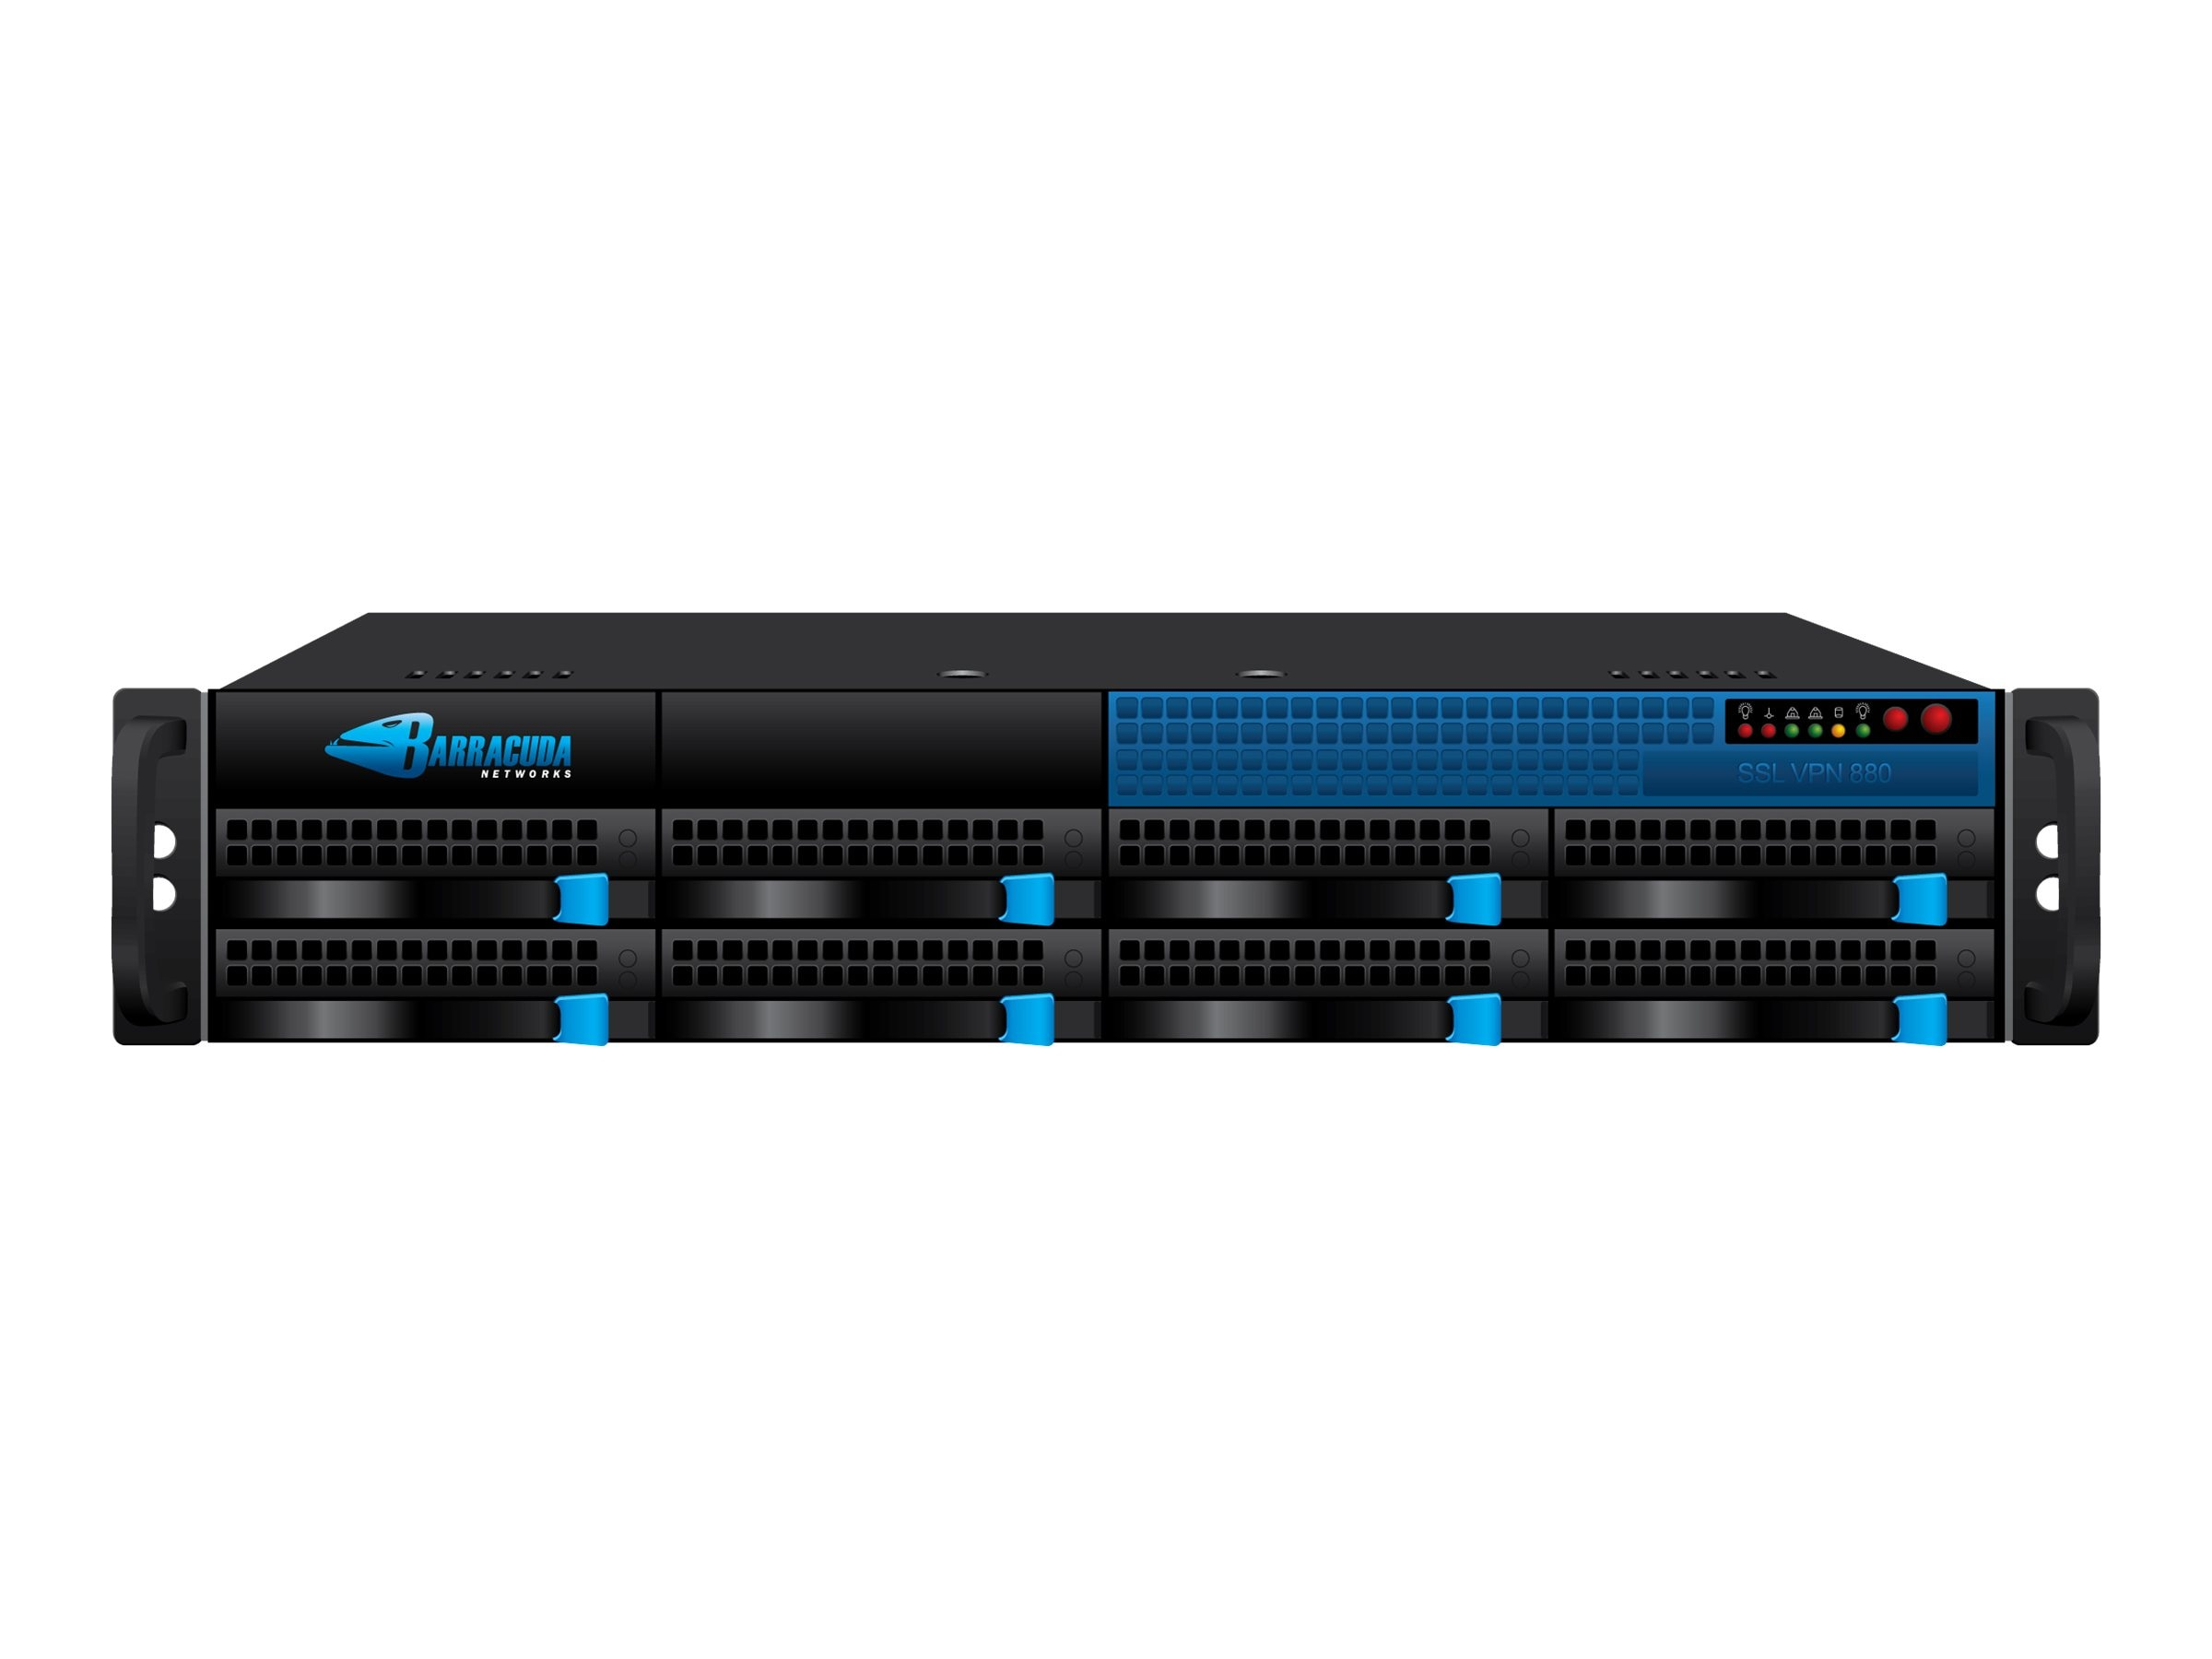 Barracuda BVS880A555 Image 1